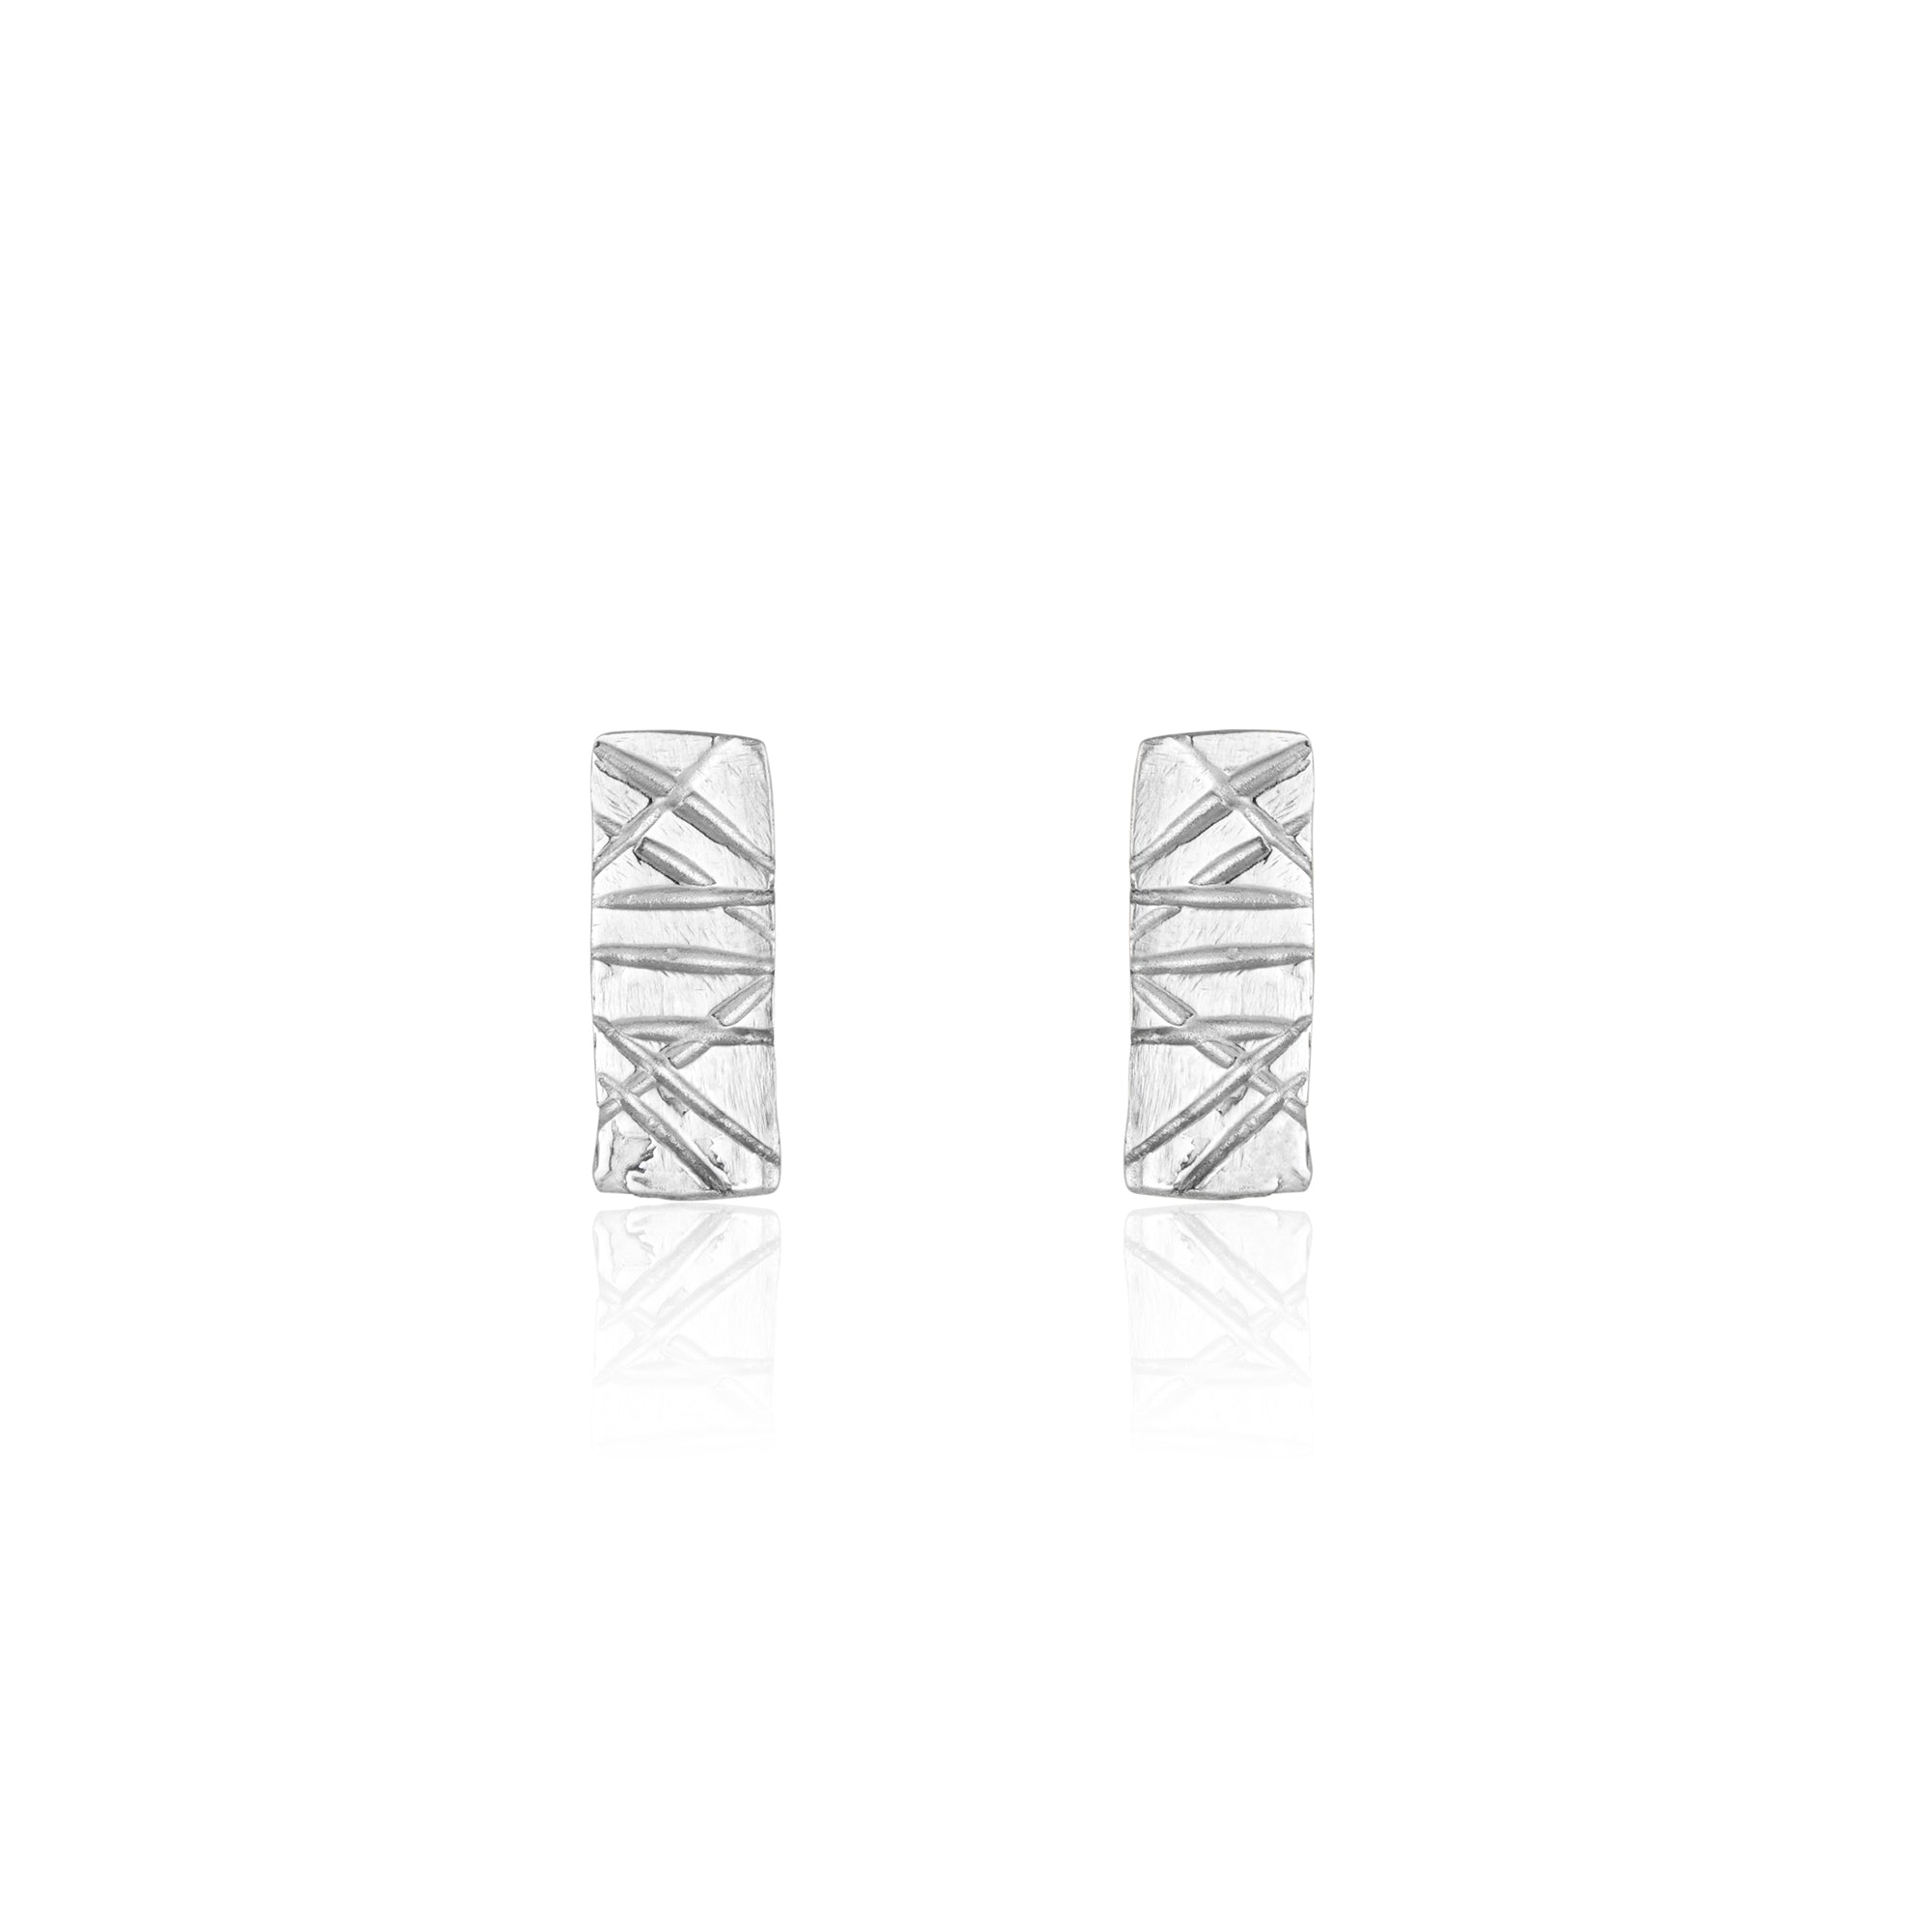 Wear them to the gym, wear them to a black tie event, wear them anywhere! The Natalie McMillan Sterling Silver Jackie Stud is a super versatile pair of earrings that can be worn with pretty much anything. They're big enough to make a statement without being overly obvious, and small enough to be comfortable enough to sleep in.